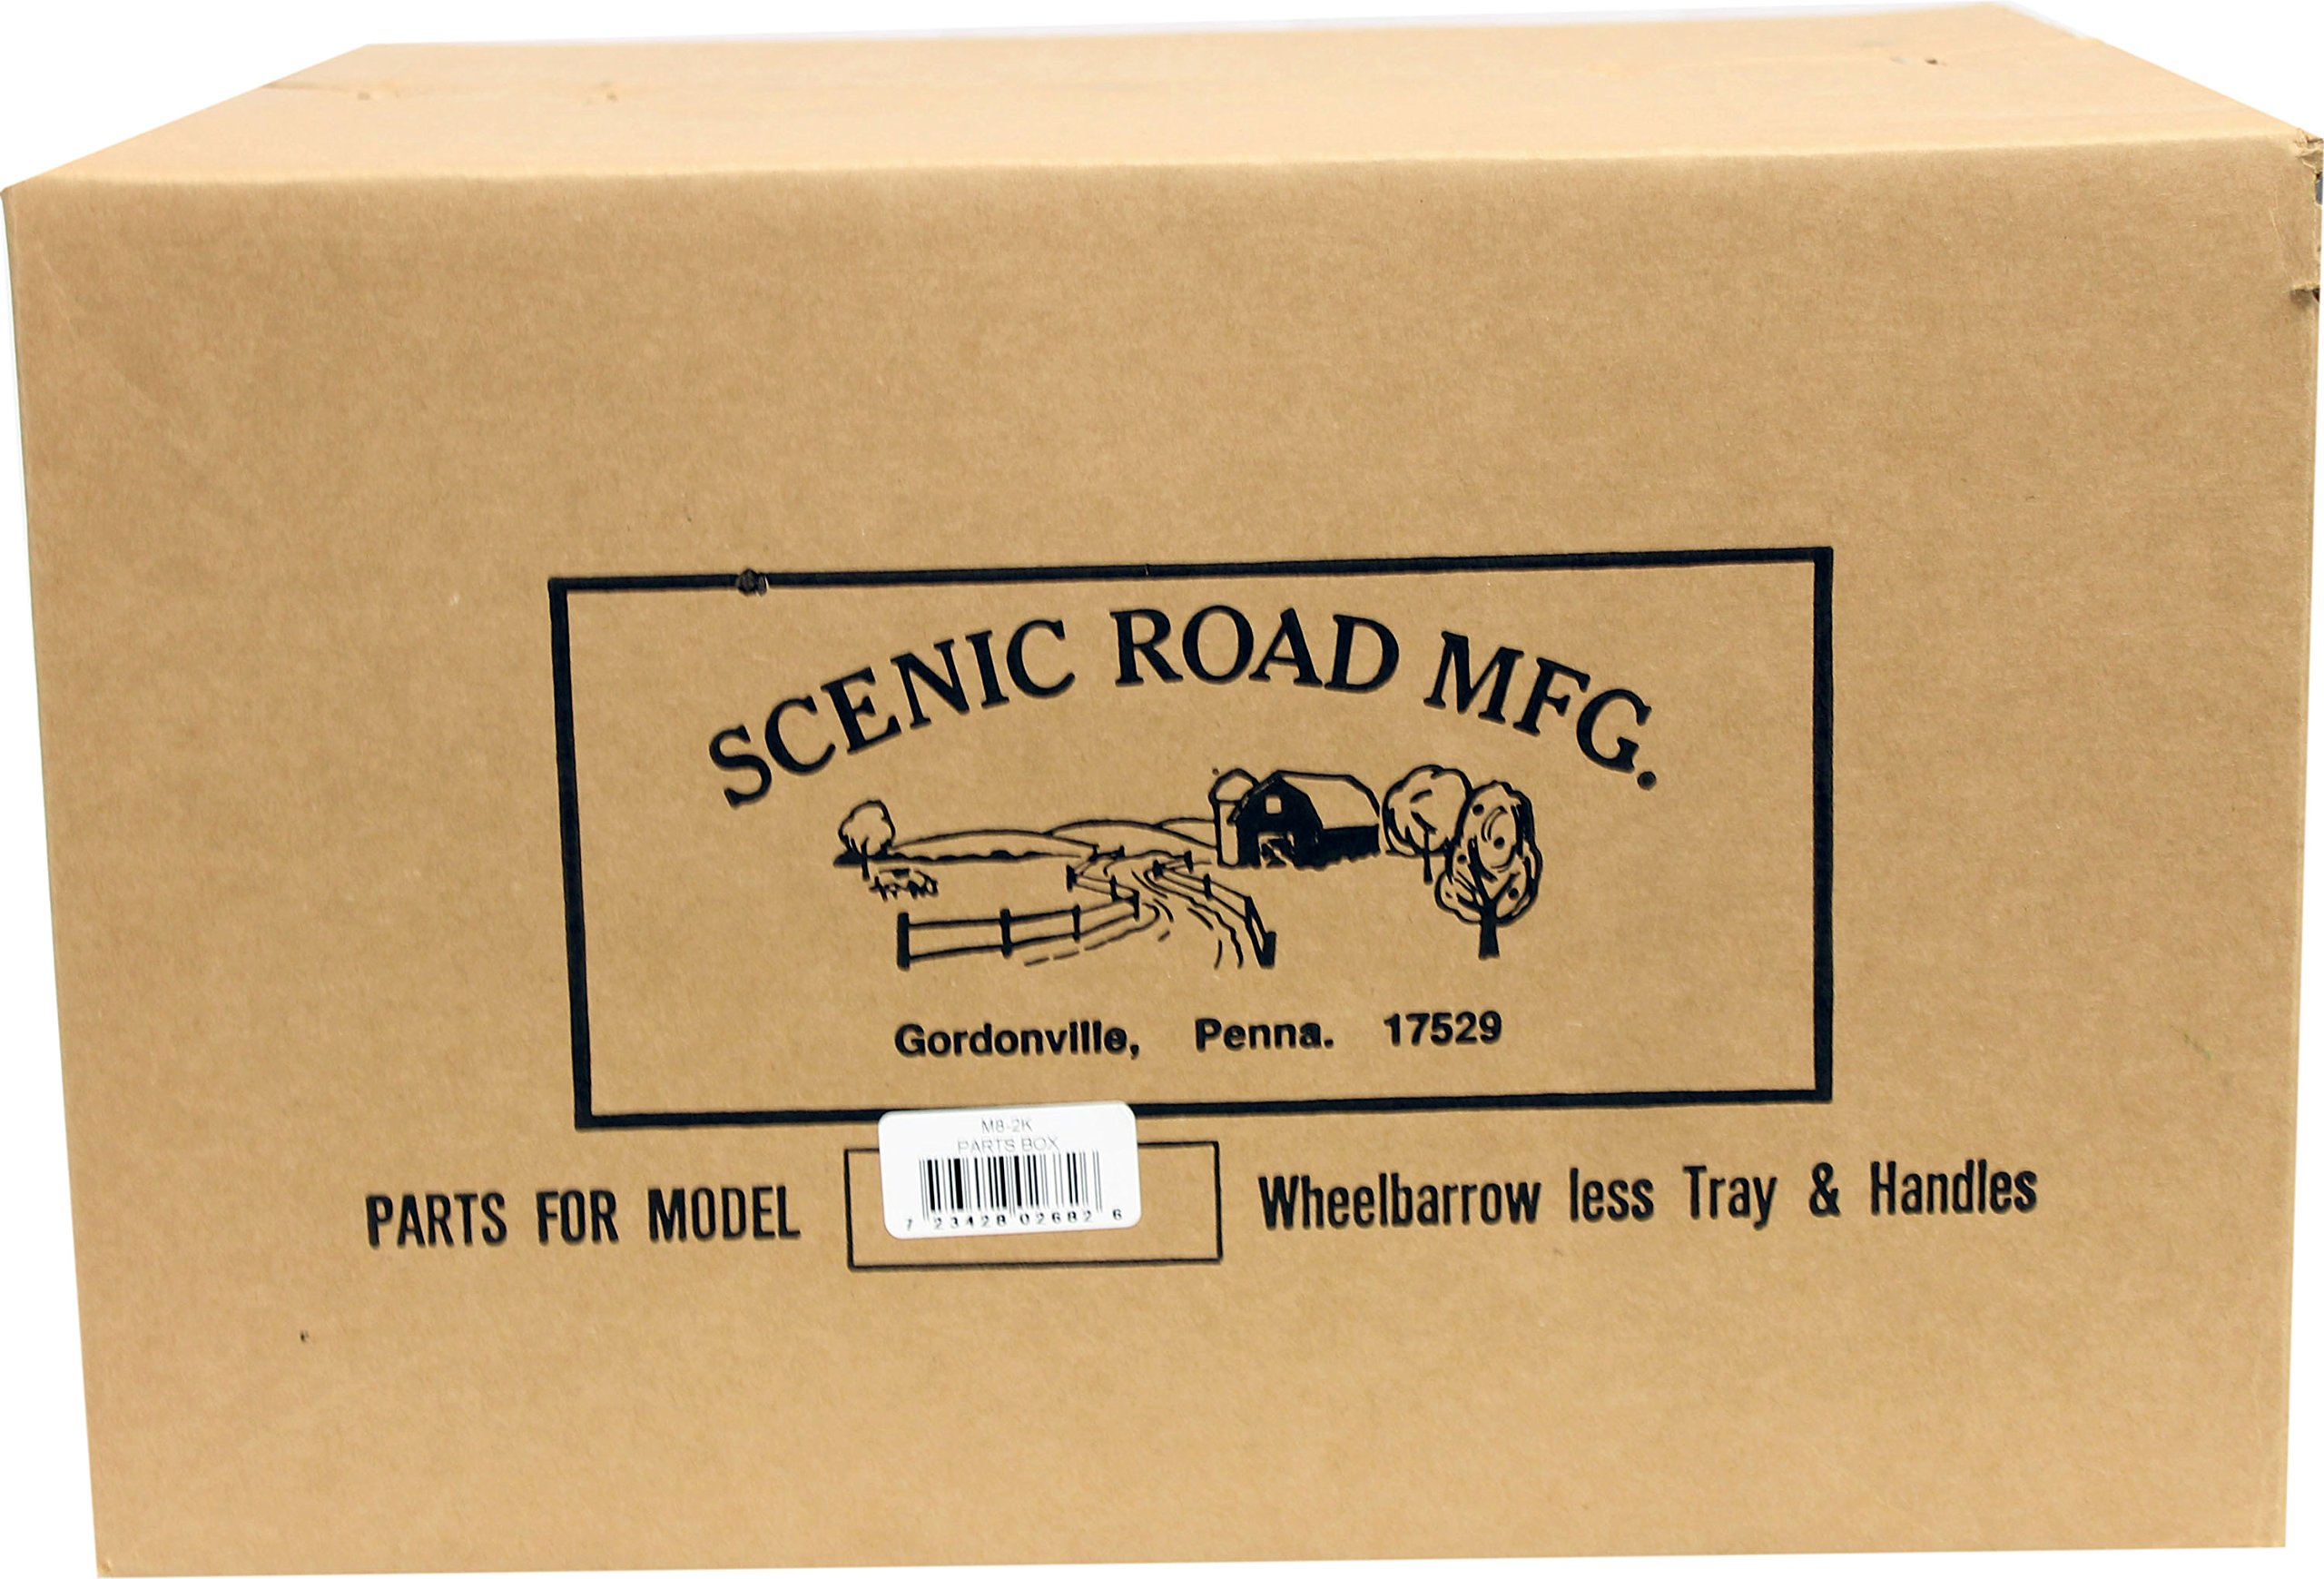 SCENIC ROAD PARTS BOX M8-2K Wheelbarrow